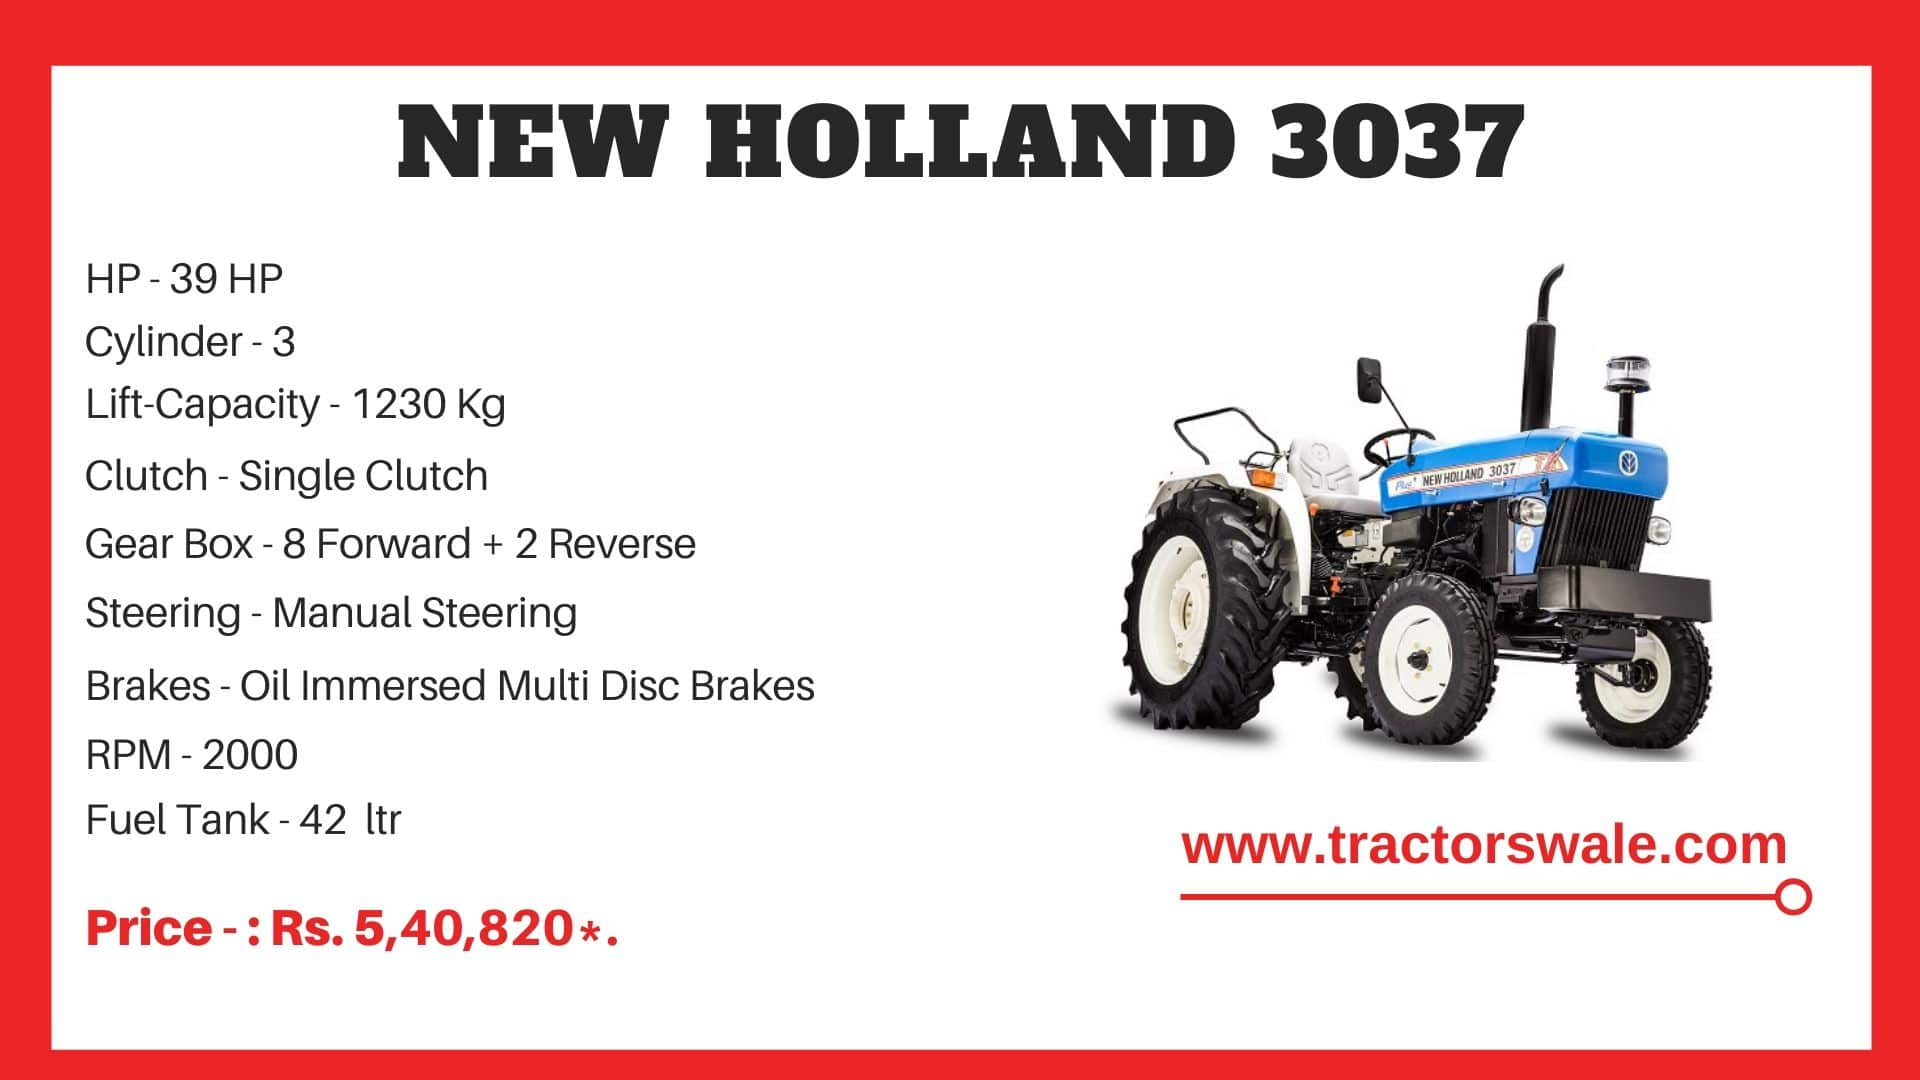 New Holland 3037 tractor price